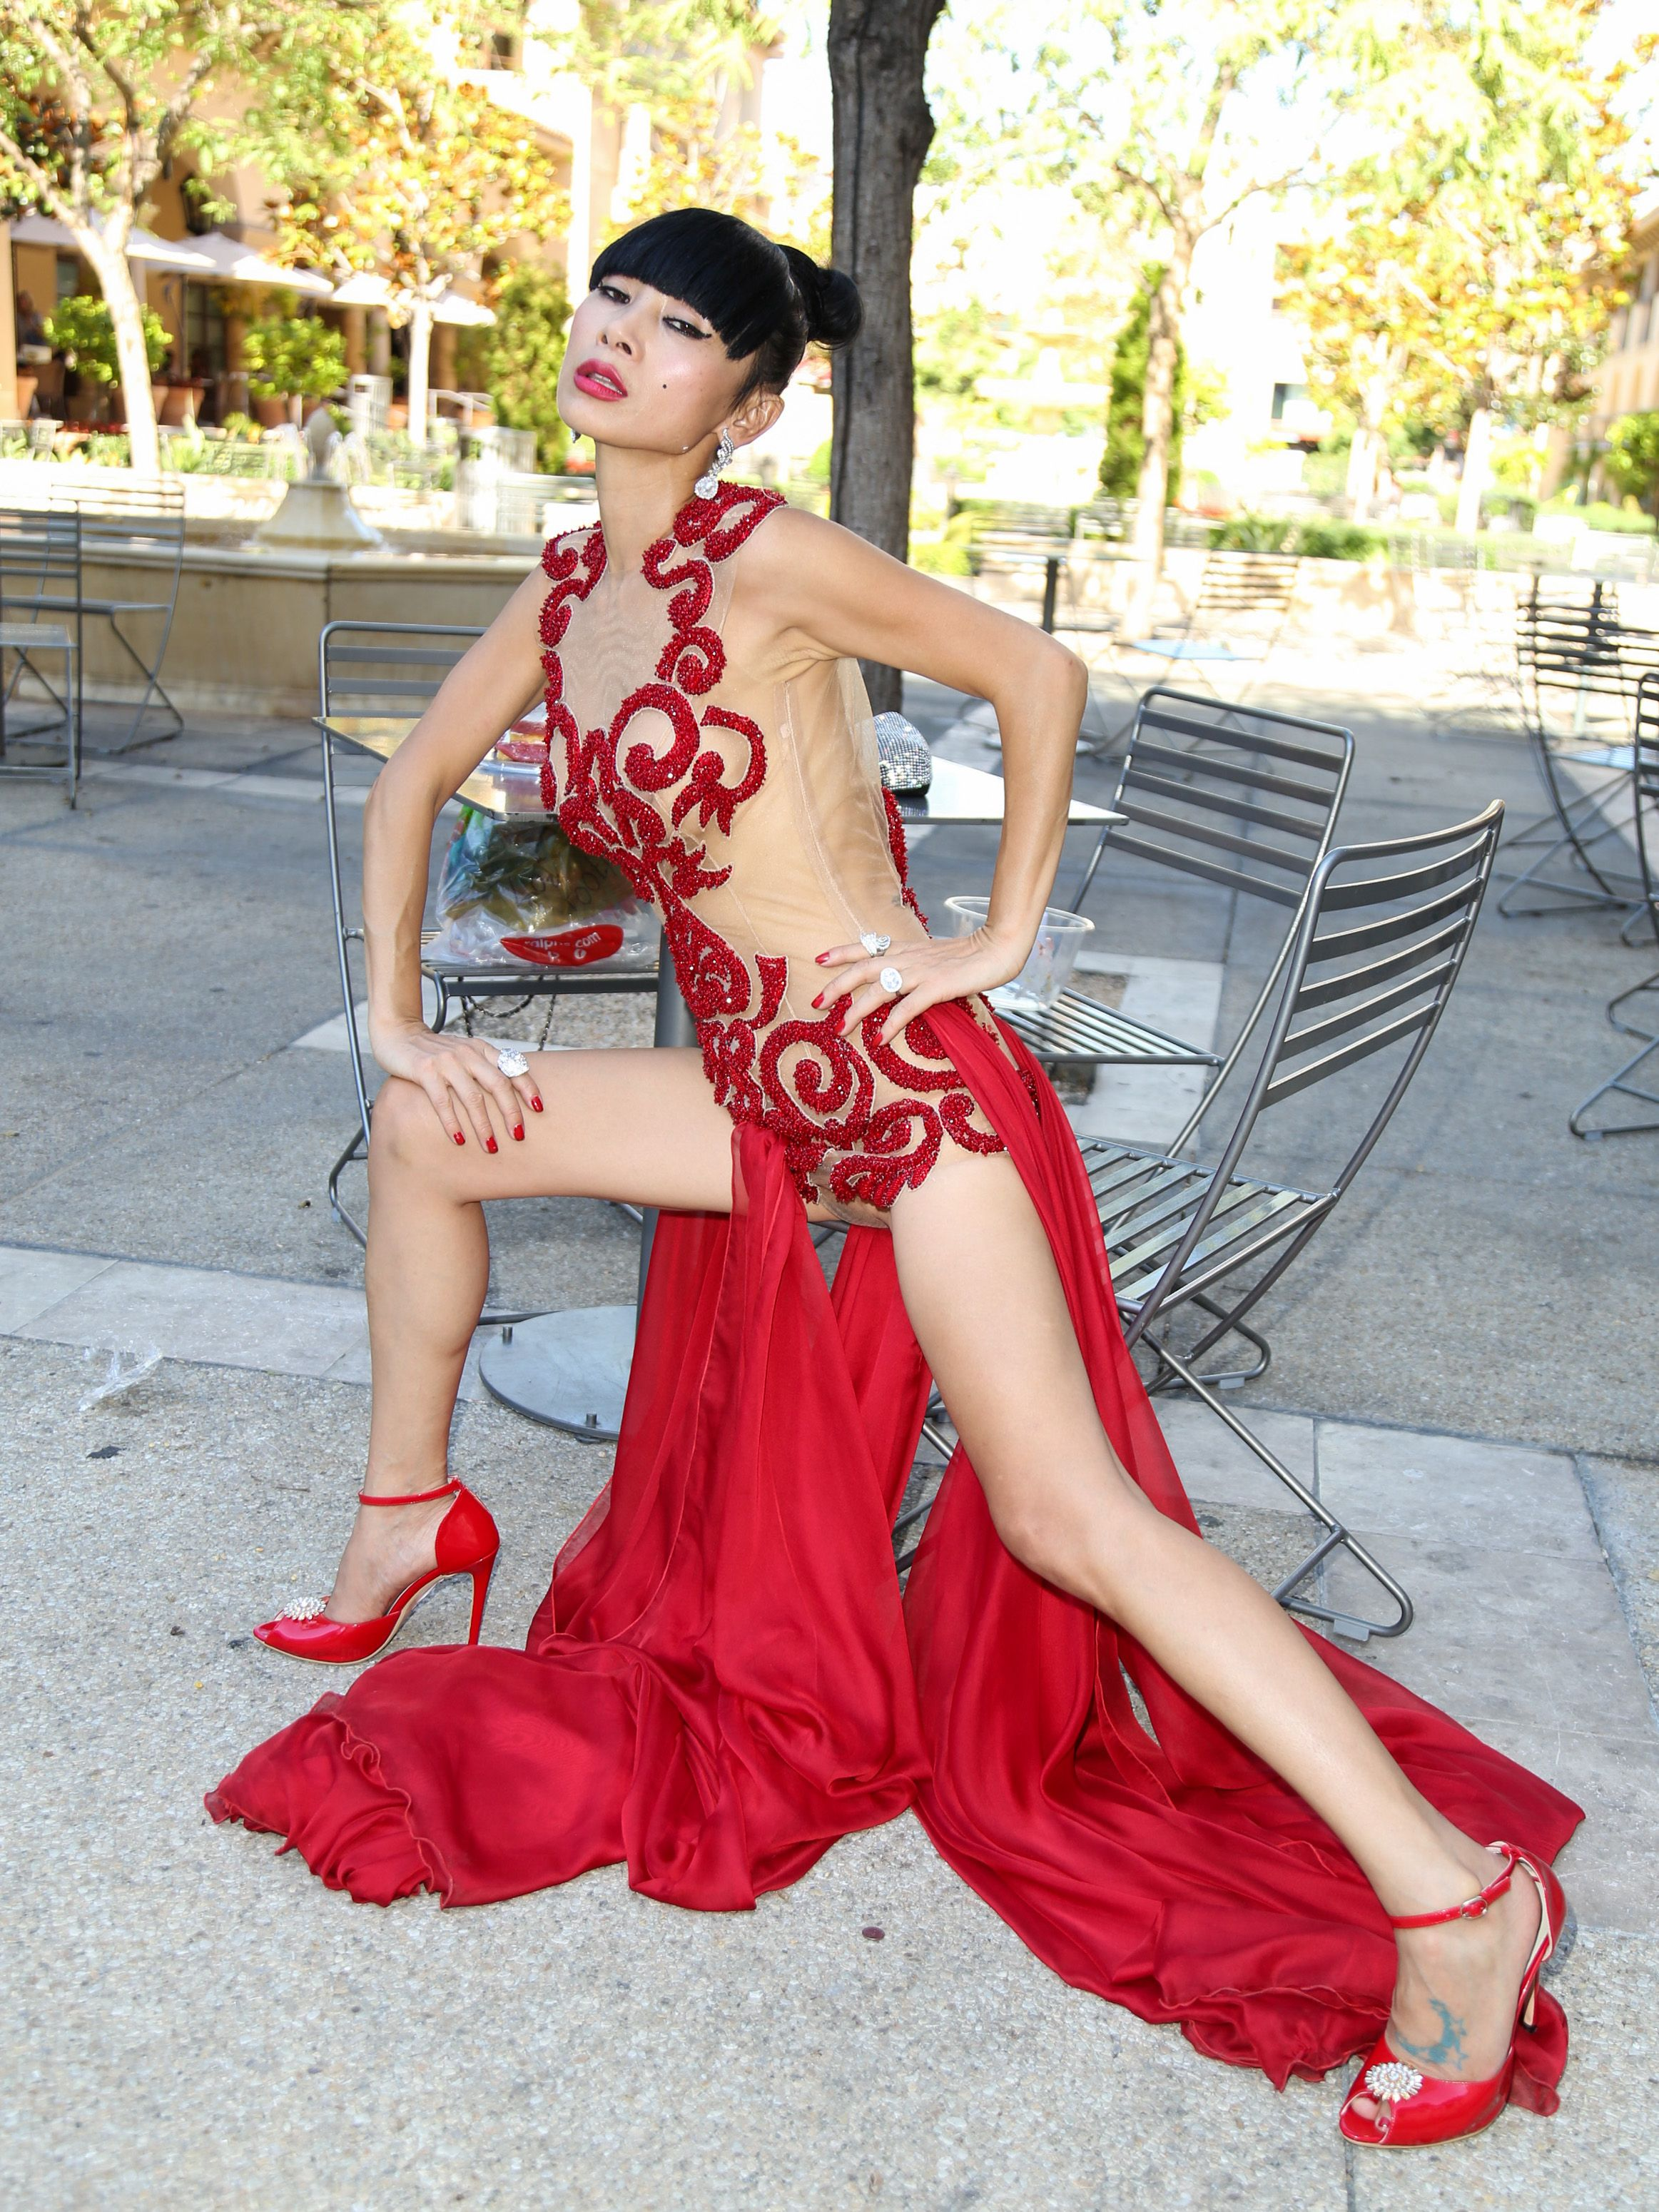 Sexy pics of Bai Ling. 2018-2019 celebrityes photos leaks! nude (12 photos), Leaked Celebrity photos